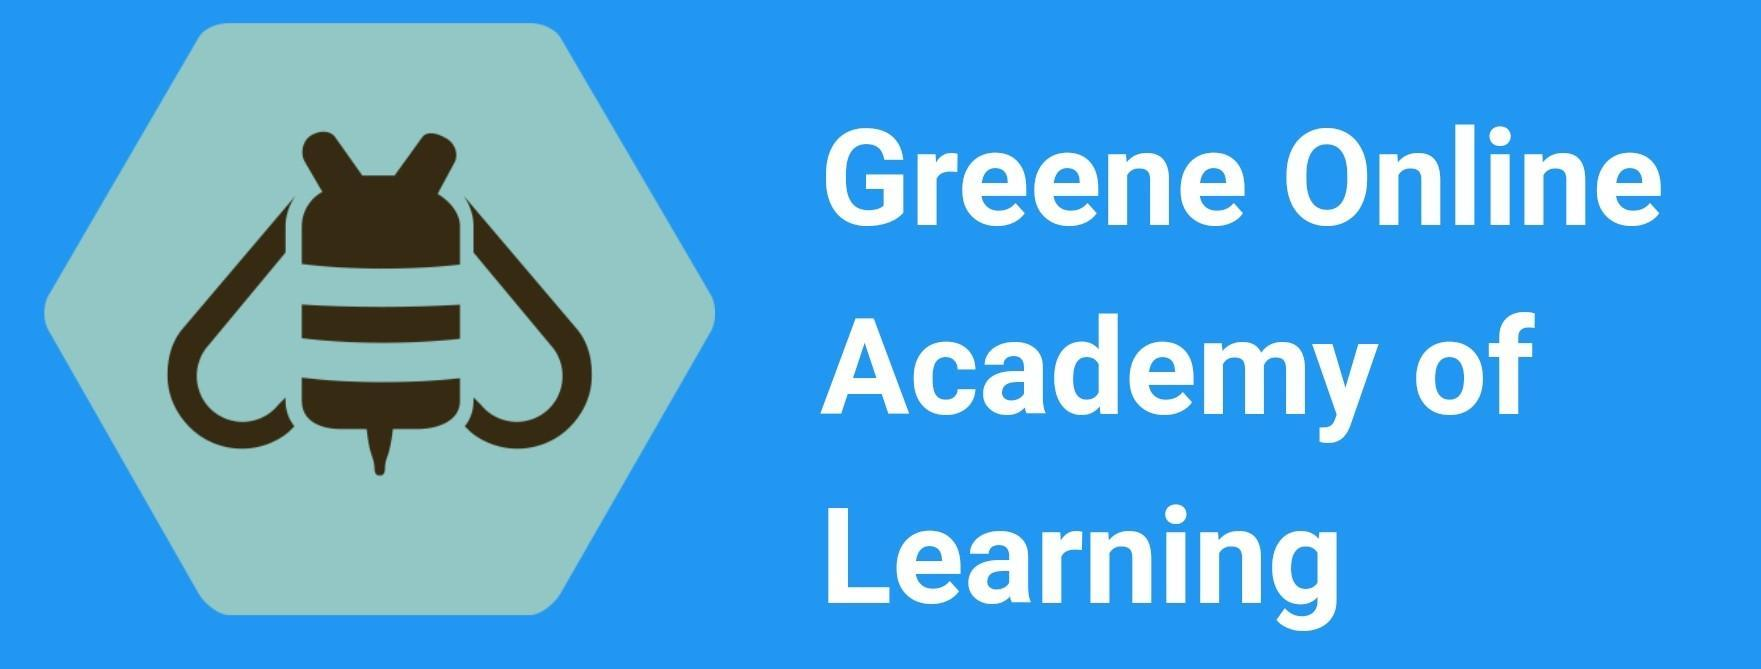 Greene Online Academy of Learning